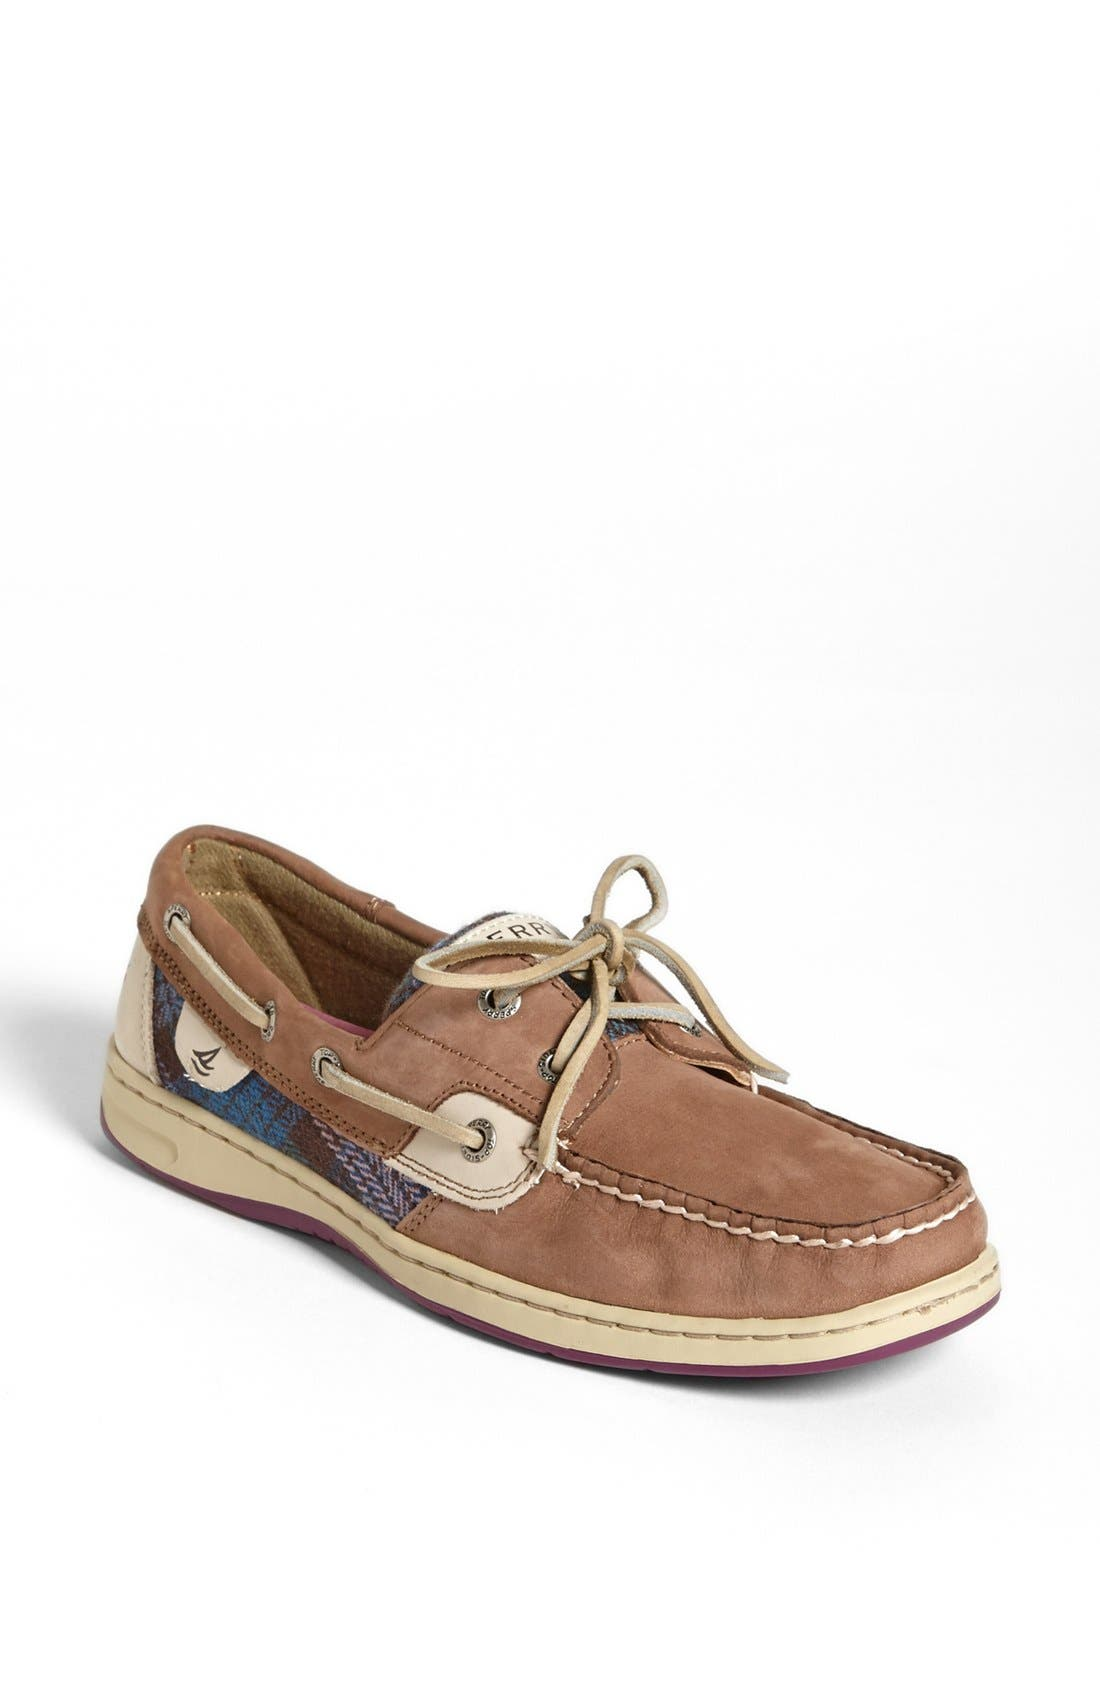 Alternate Image 1 Selected - Sperry Top-Sider® 'Bluefish 2-Eye' Boat Shoe (Women) (Online Only)